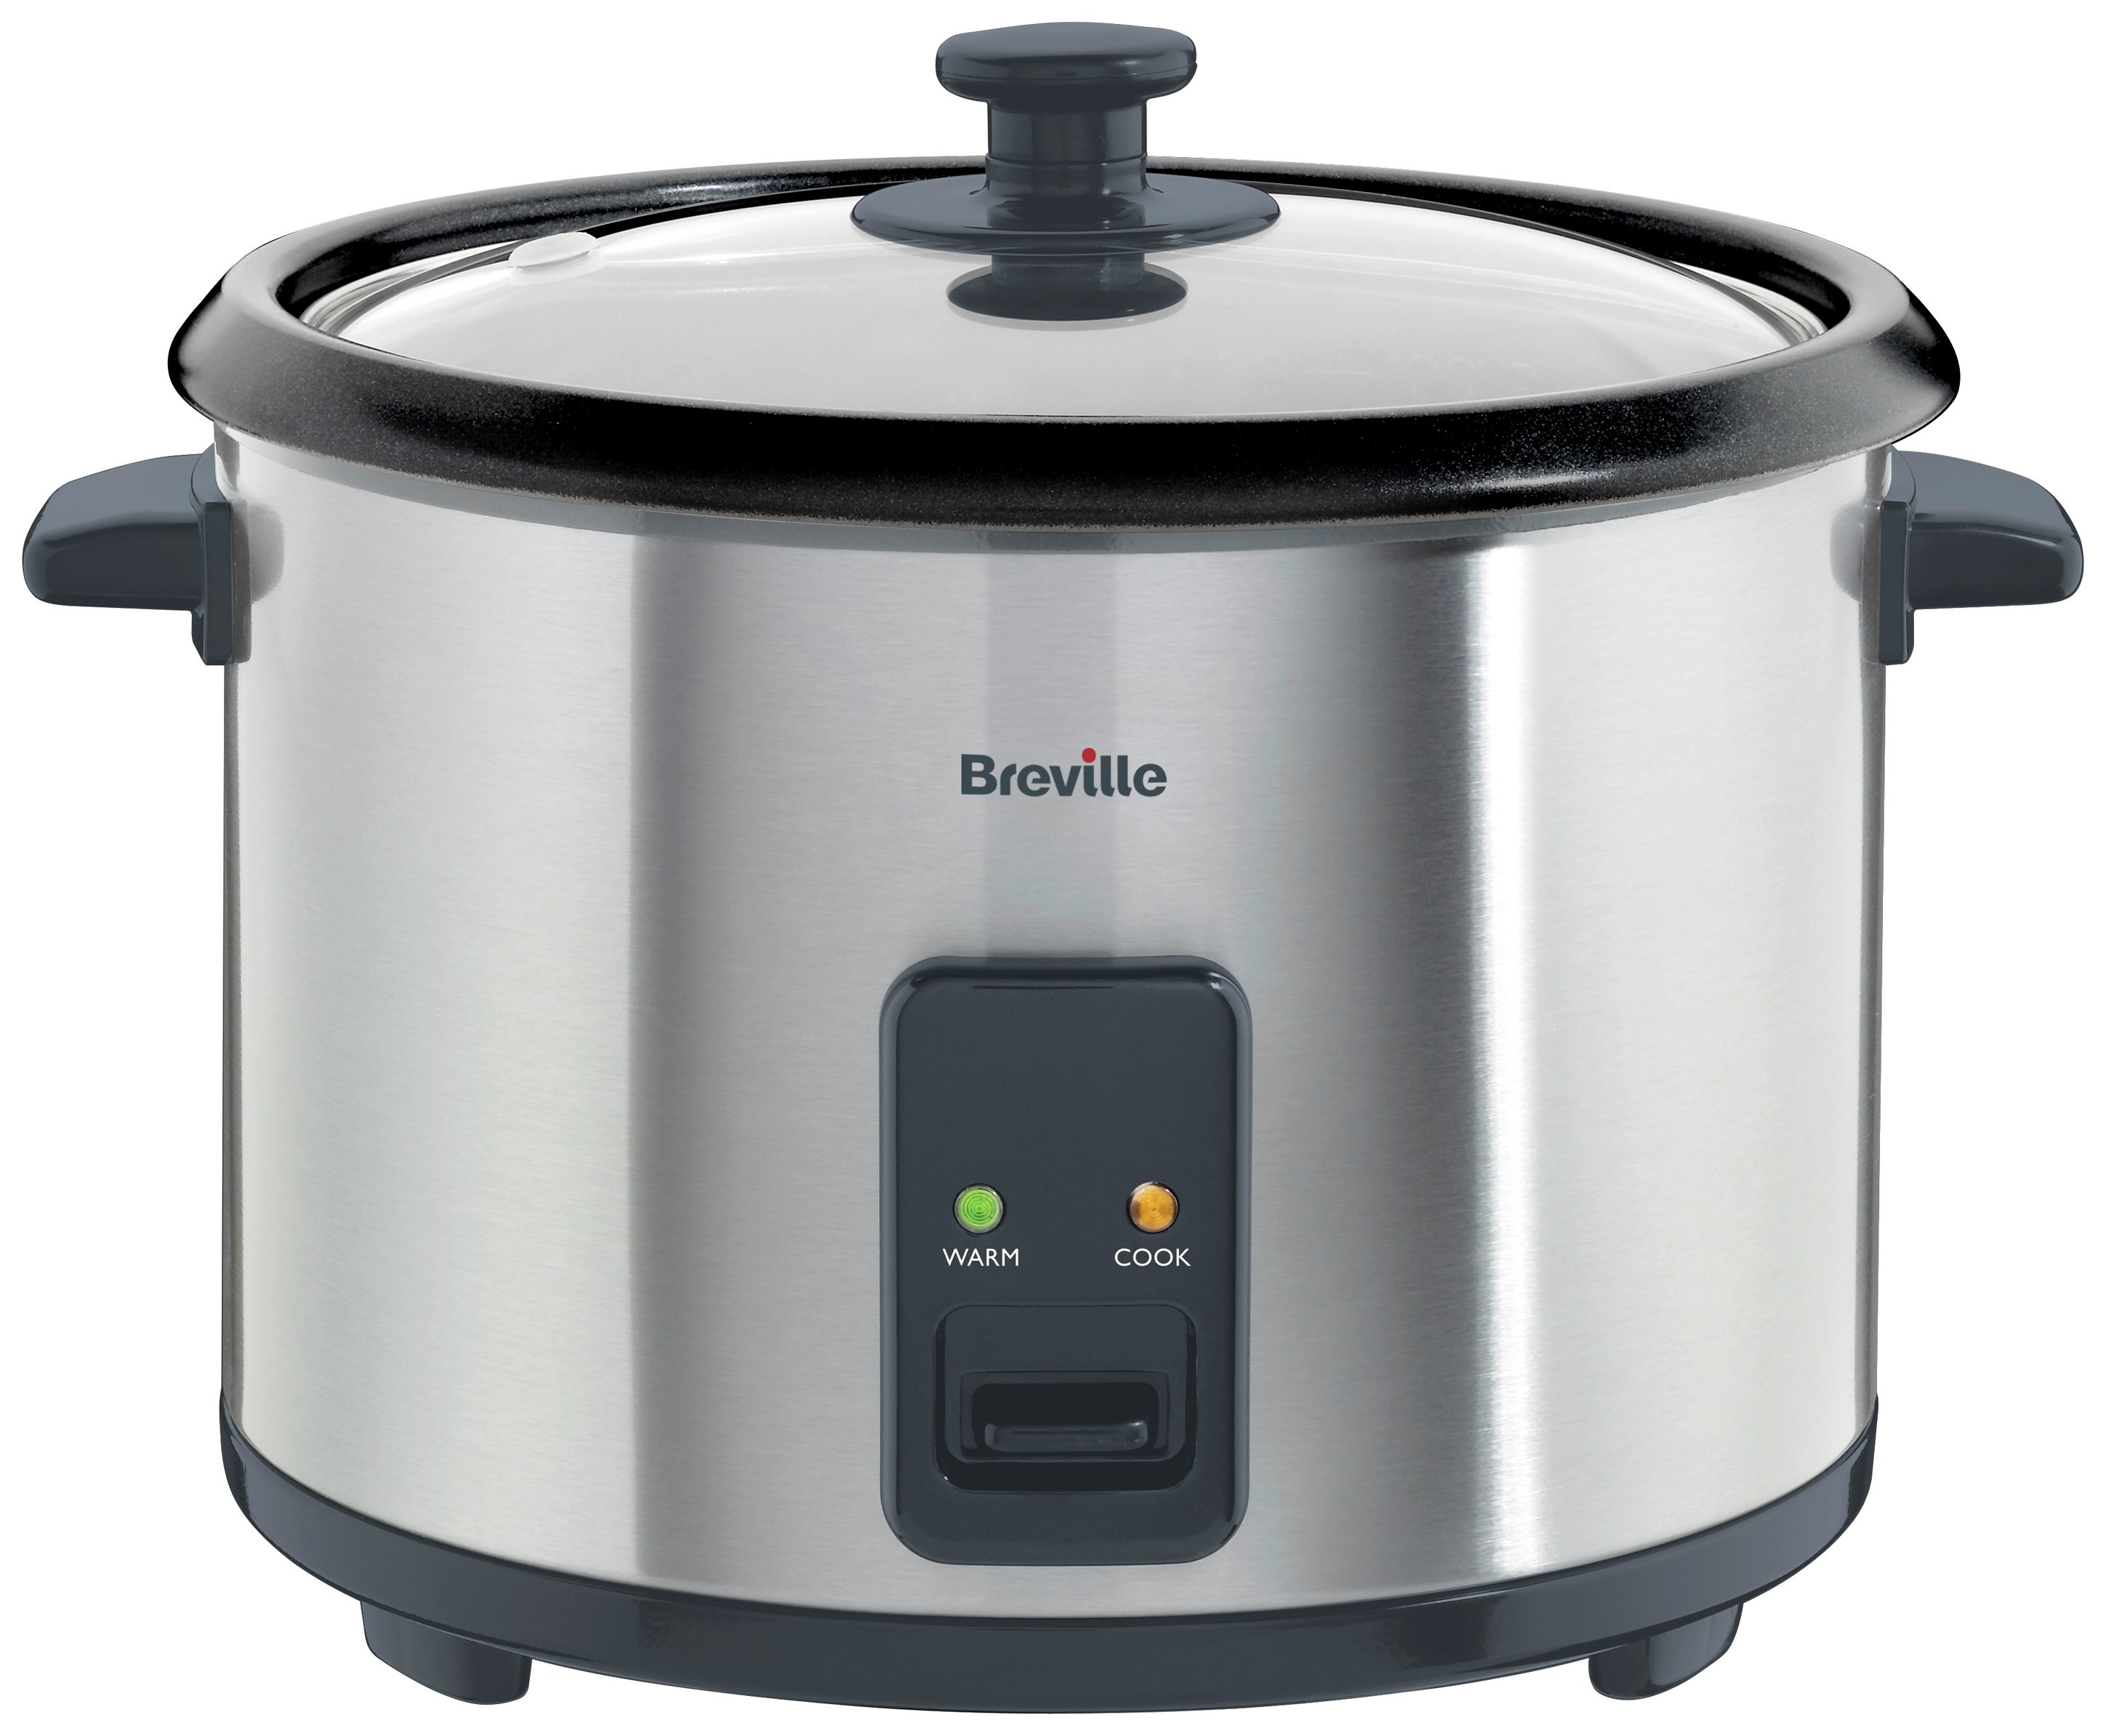 Image of Breville - ITP181 18L Rice Cooker - and Steamer - St/Steel